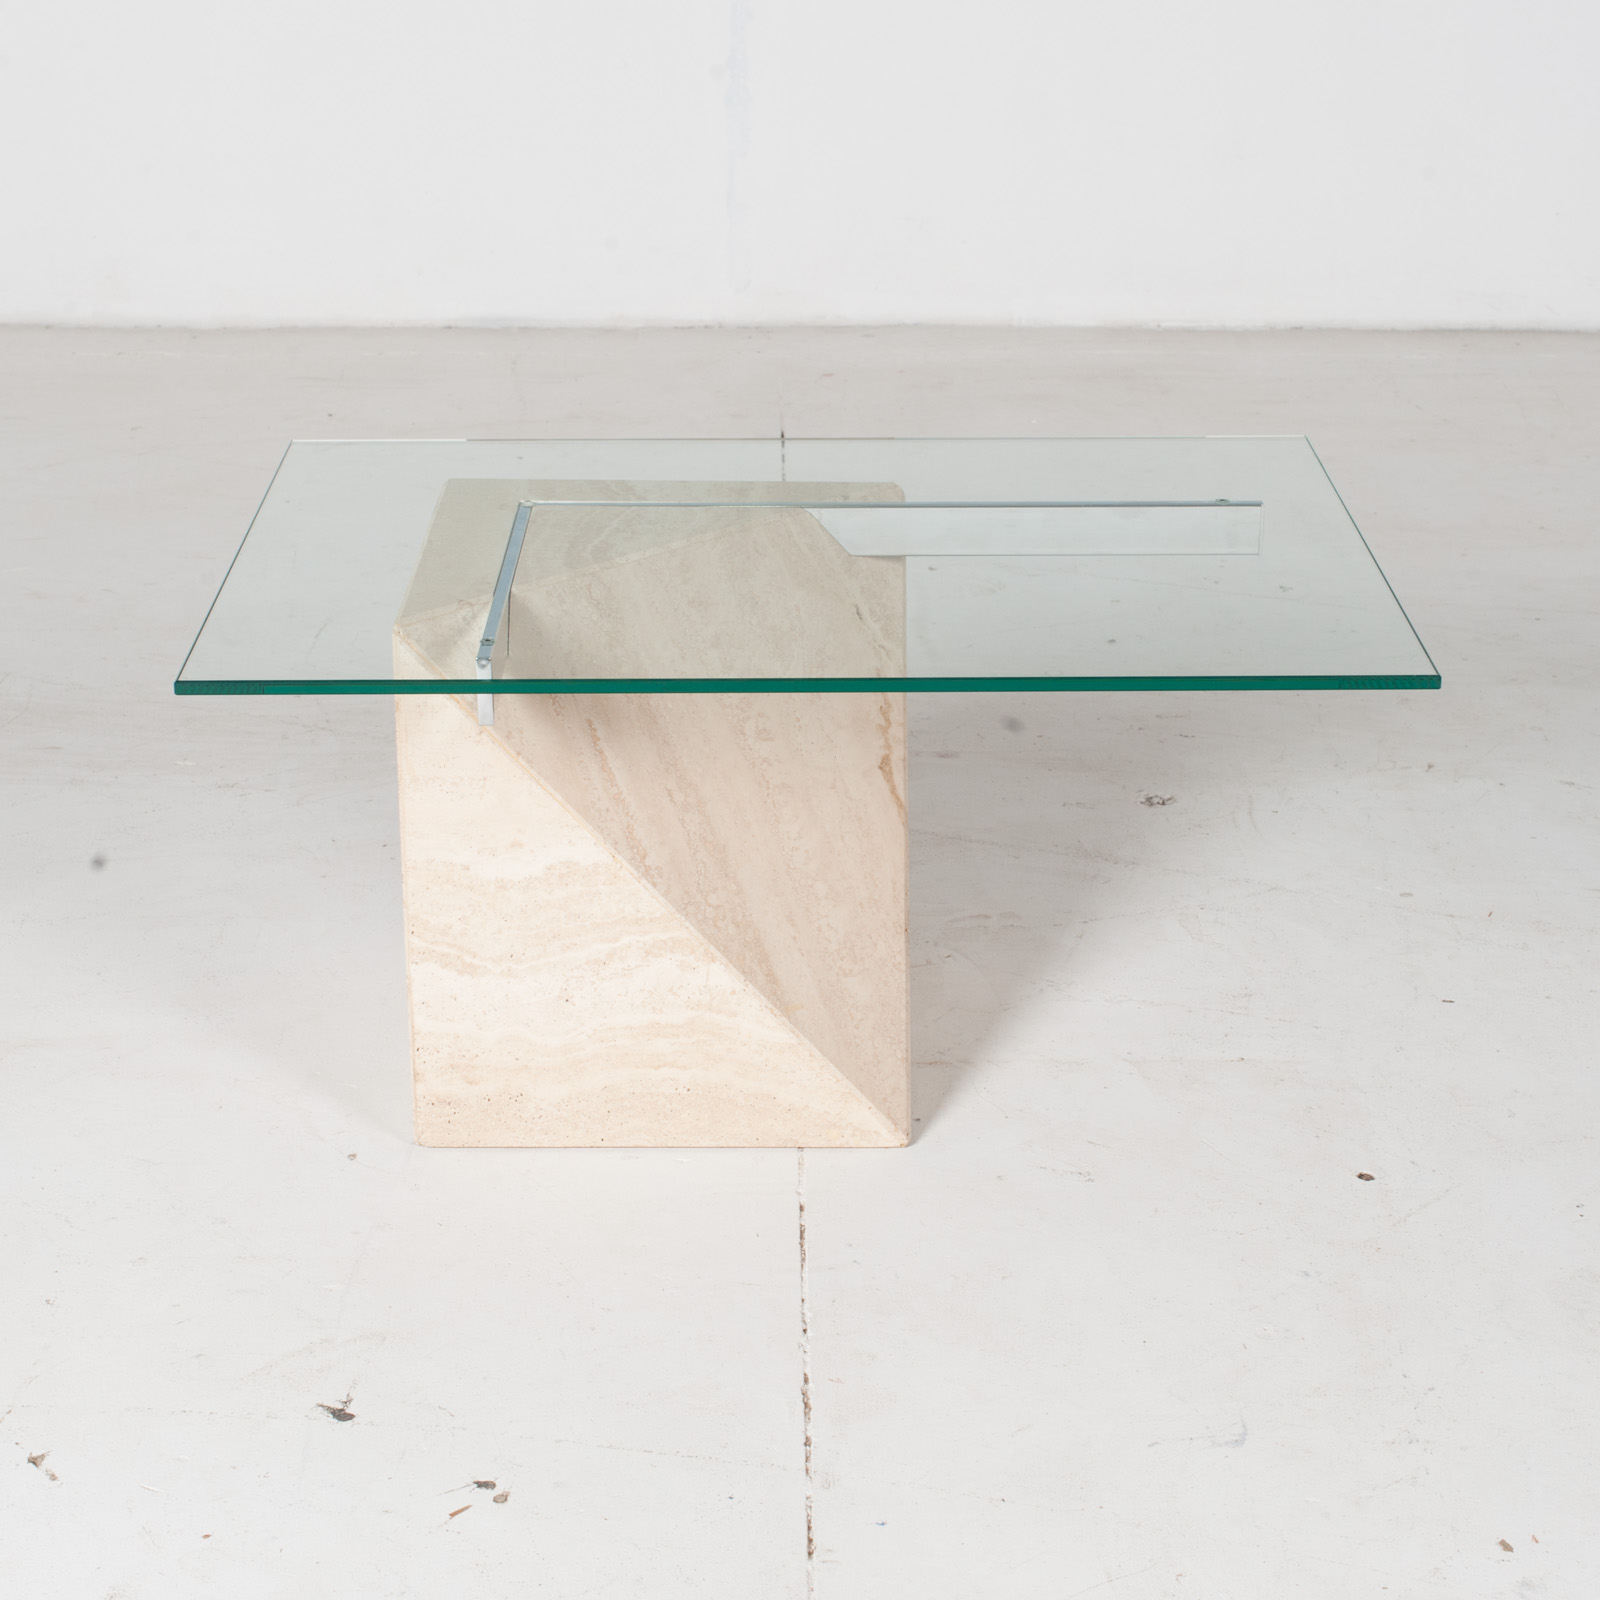 Coffee Table By Artedi In Travertine, Cantilevered Glass And Chrome, 1970s, Italy2